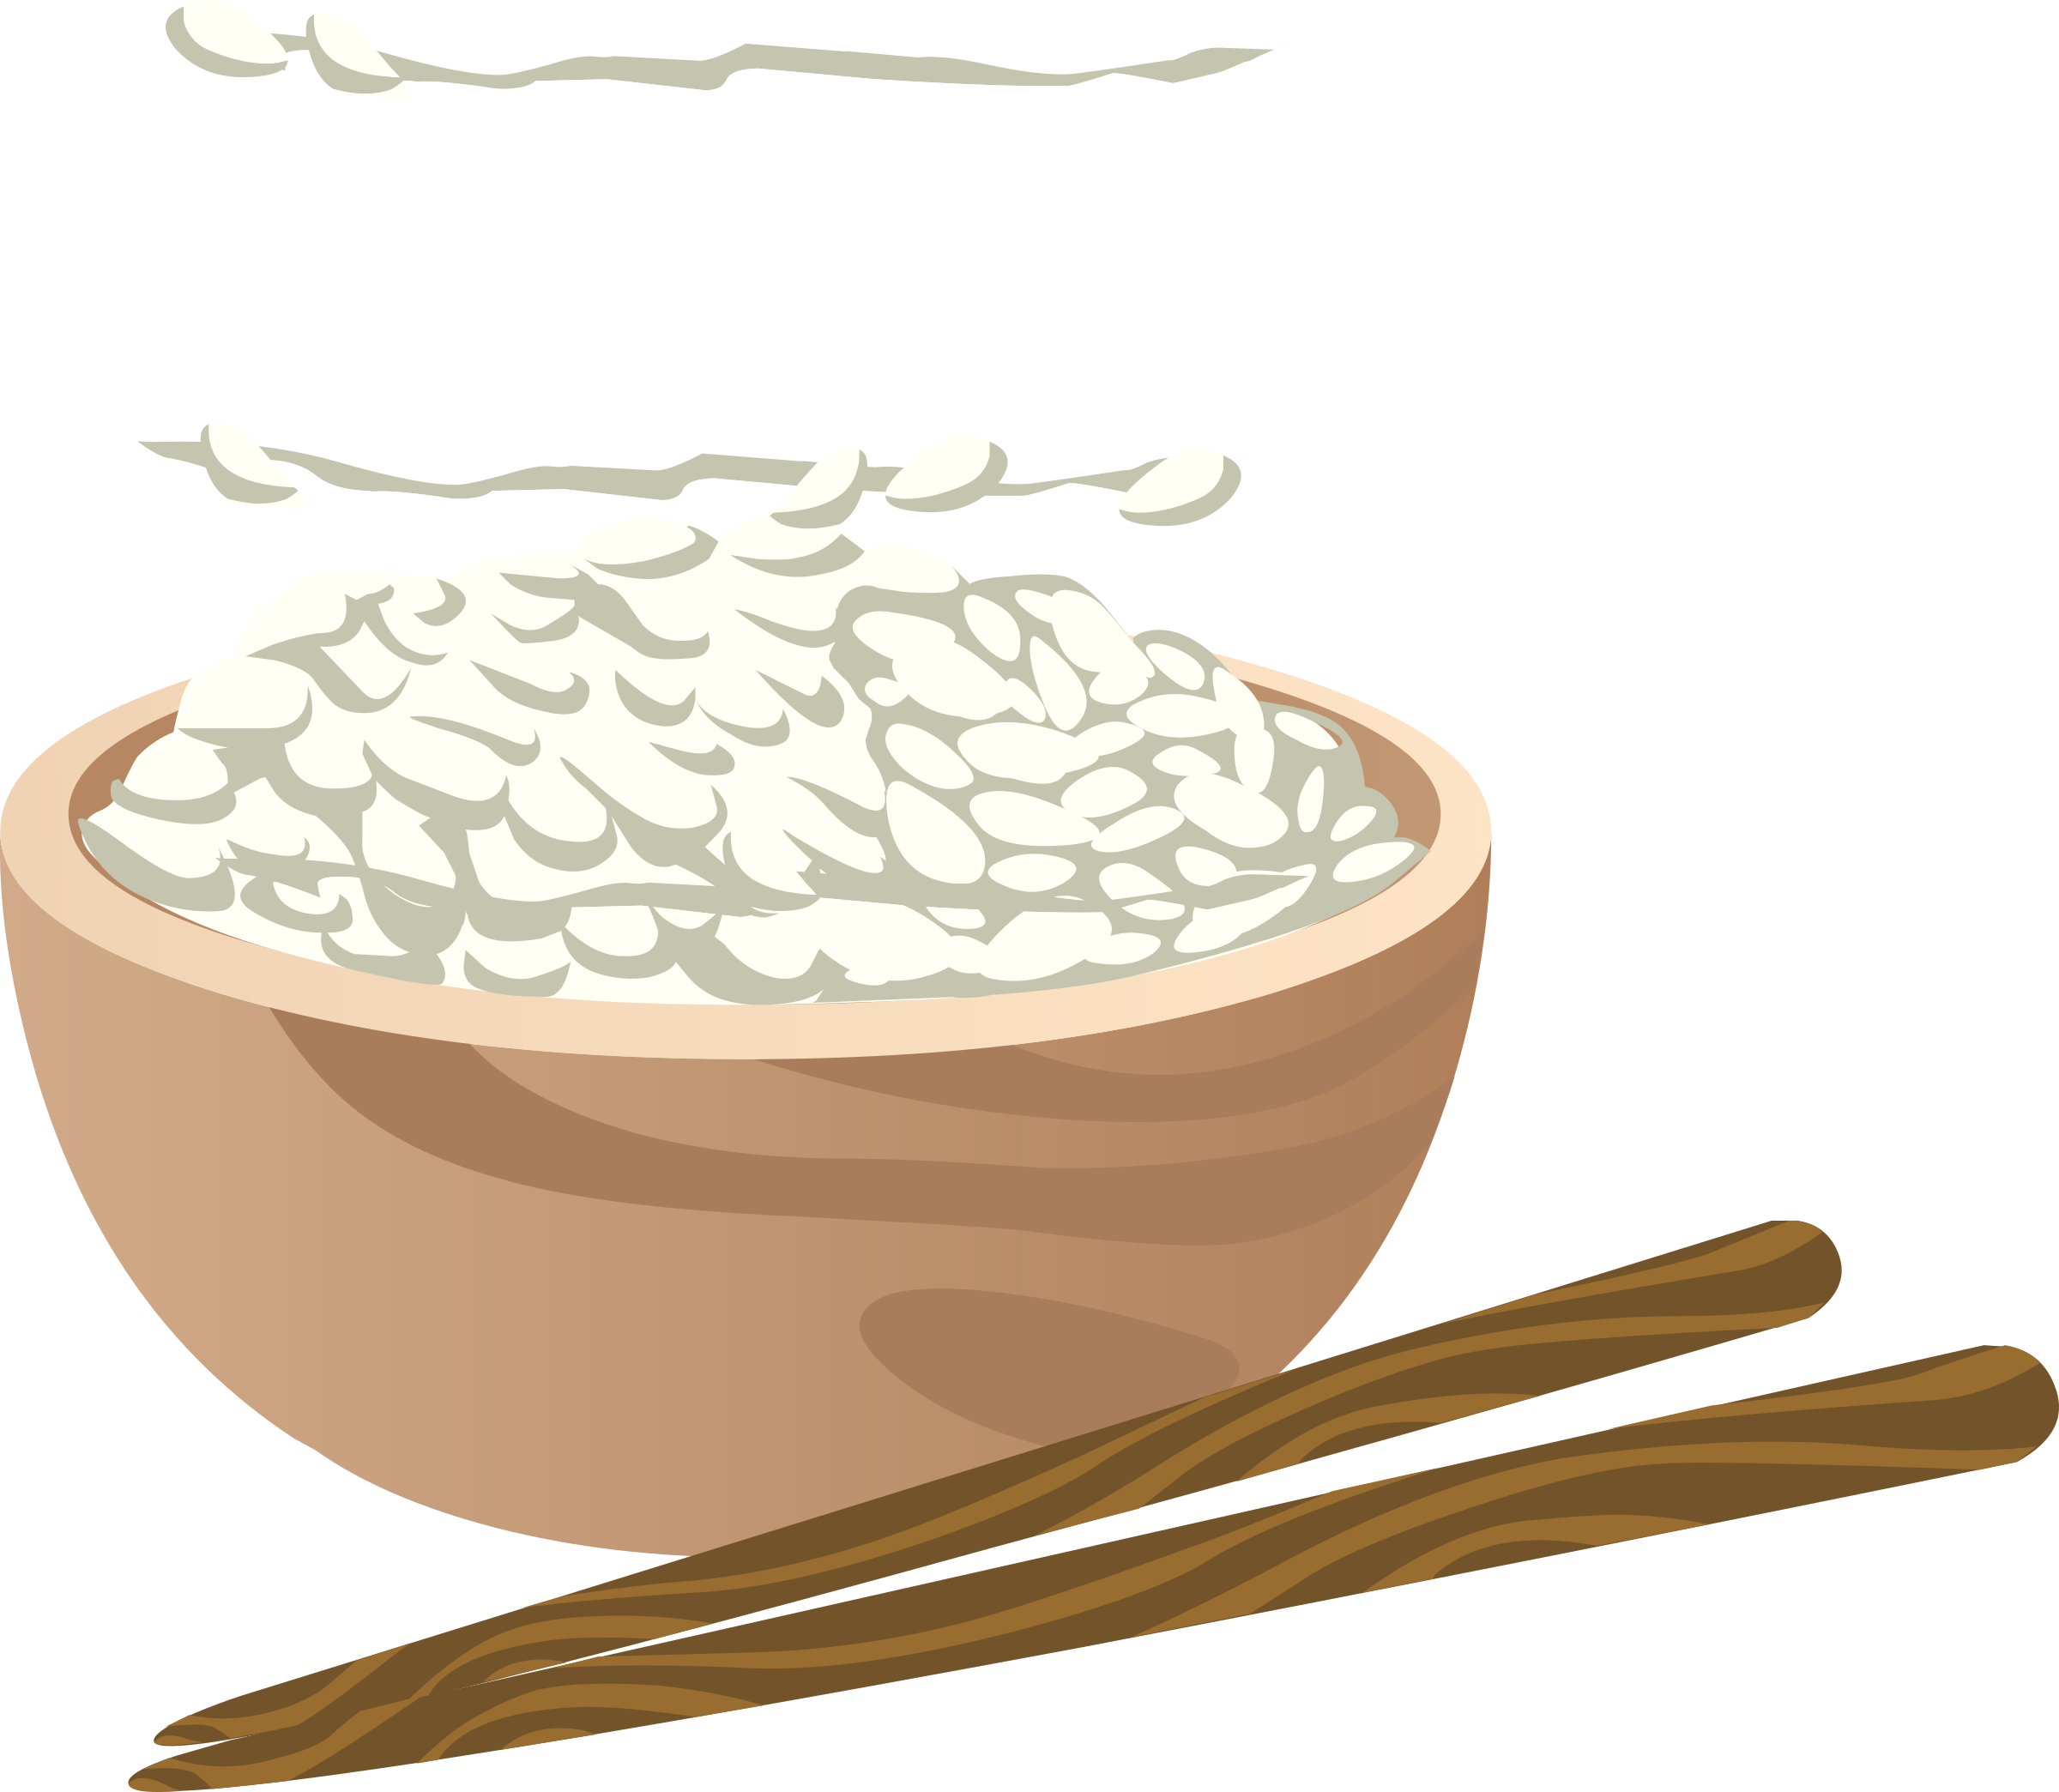 Rice clipart png graphic freeuse stock Rice clipart png 2 » Clipart Station graphic freeuse stock